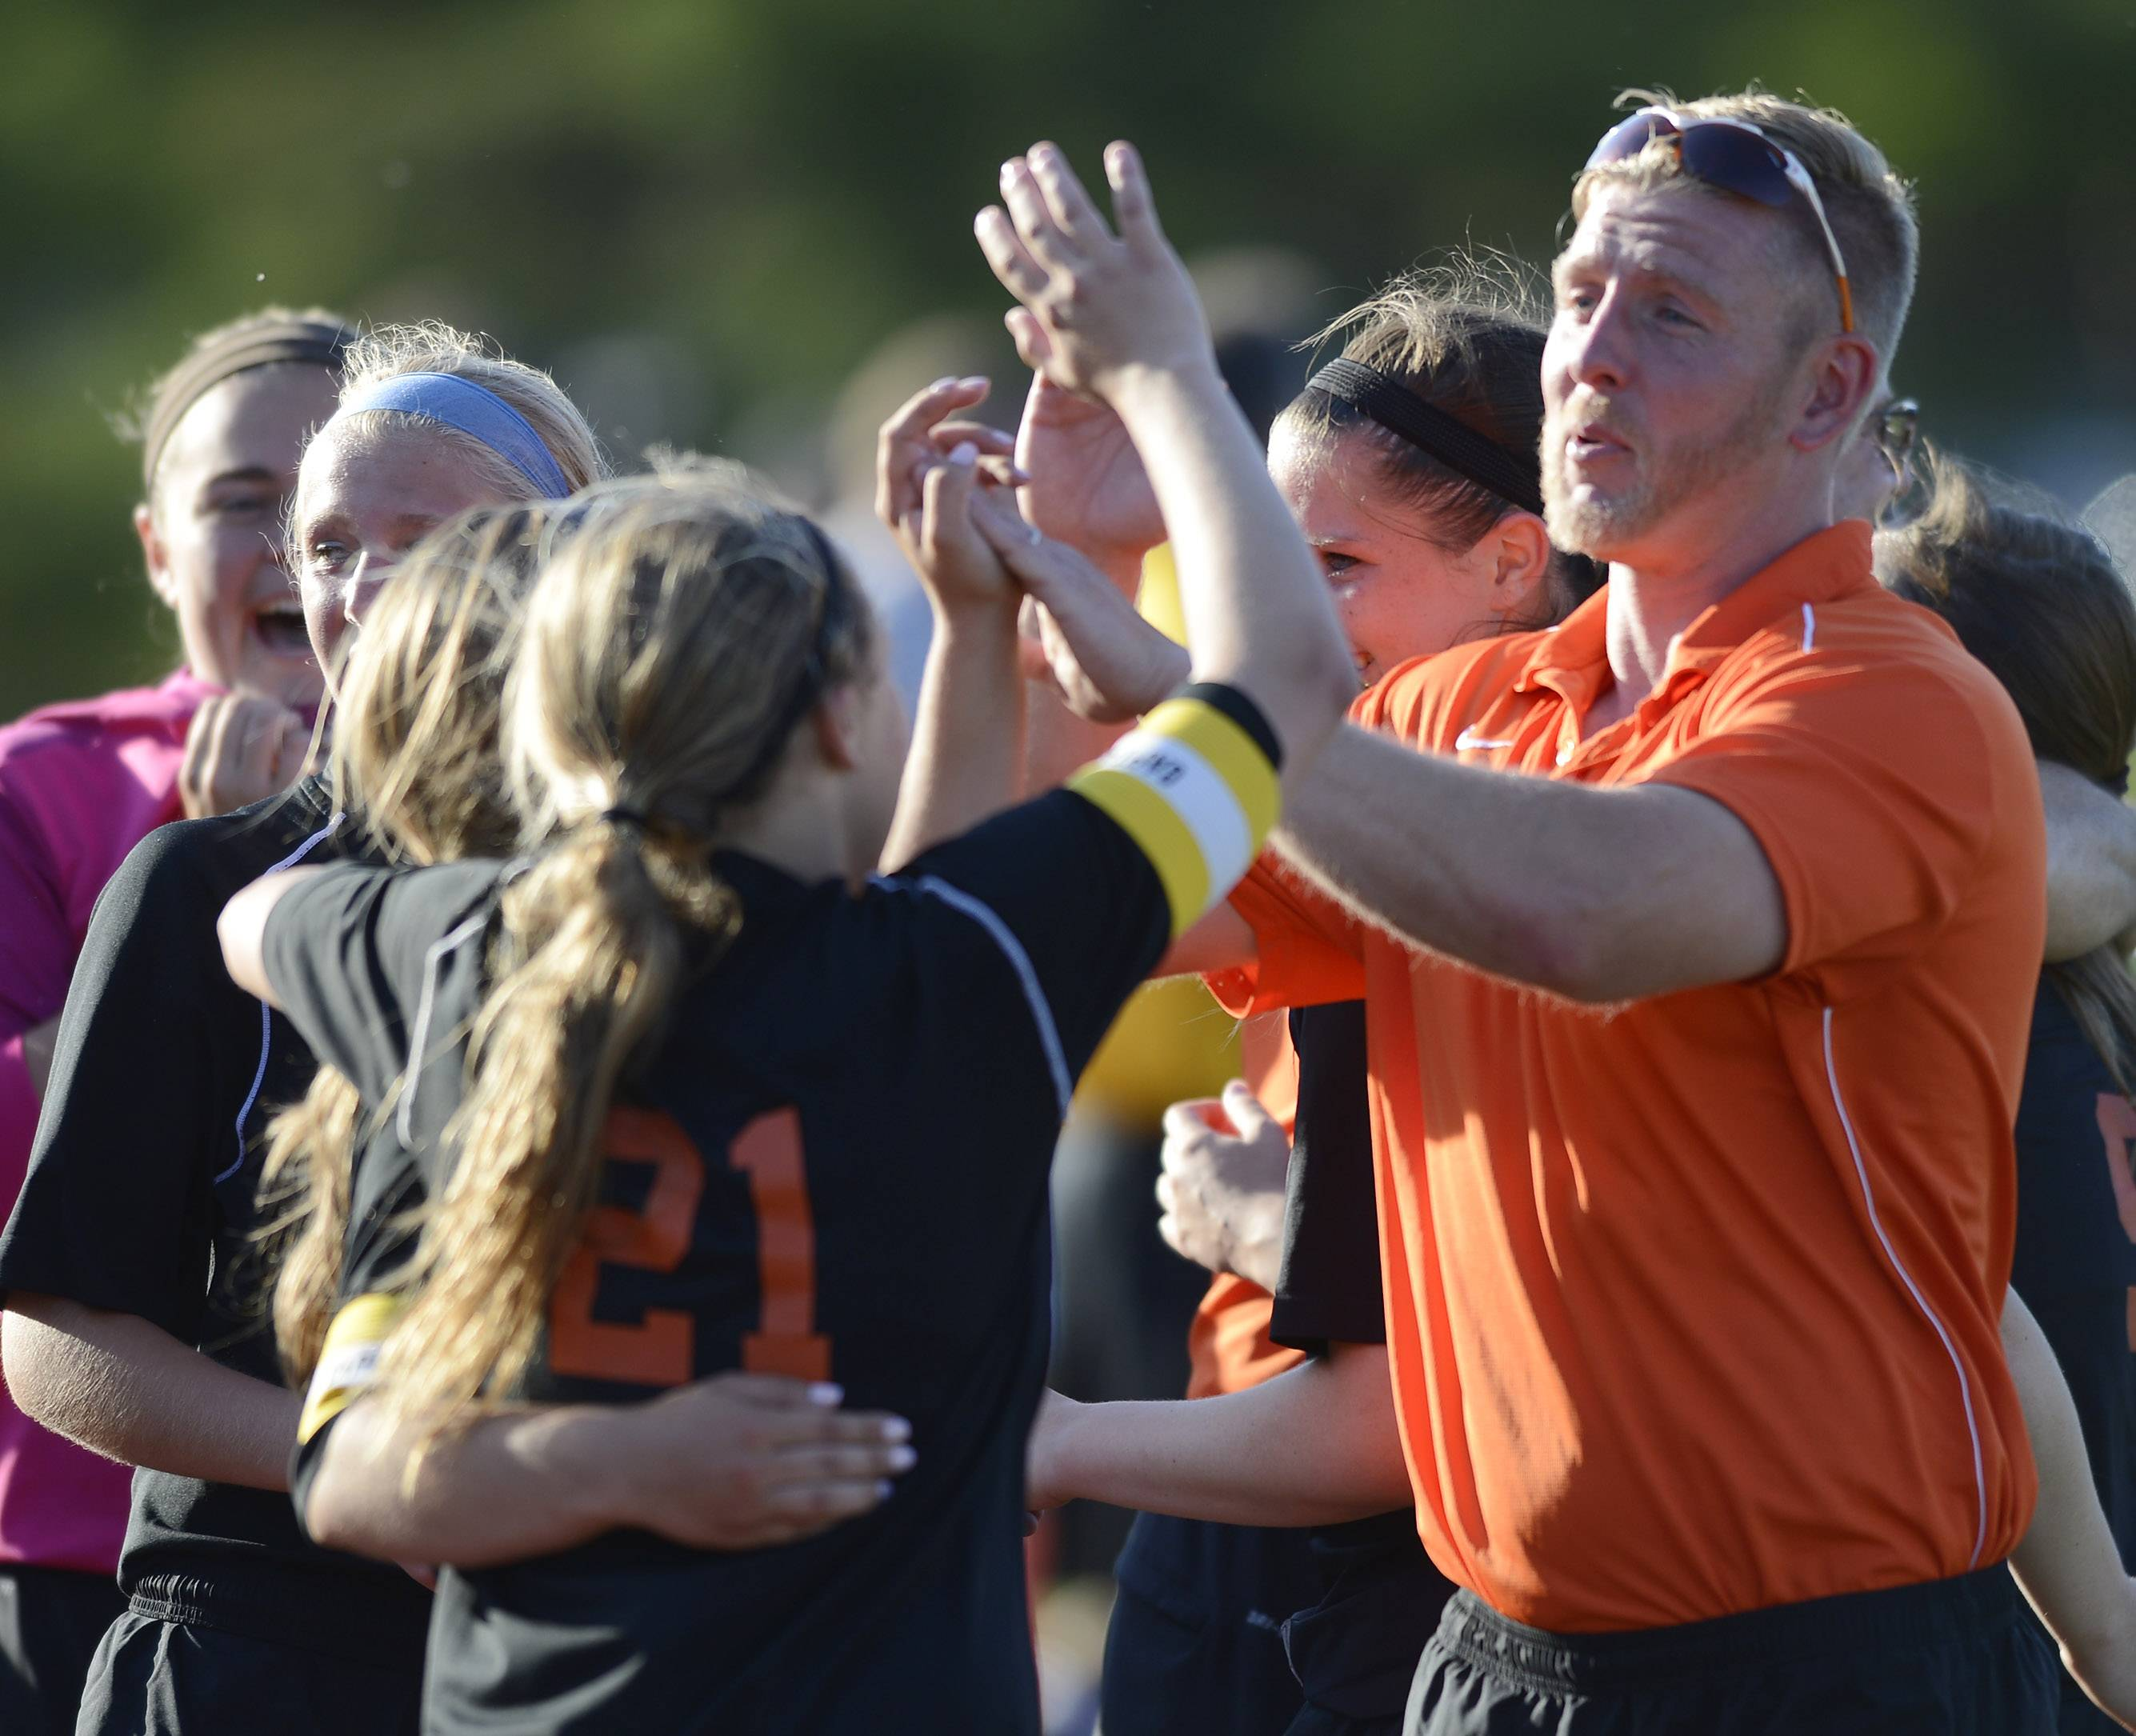 St. Charles East Head coach Paul Jennison congratulates his team for their win over Lincoln Way North during the girls soccer Class 3A state semifinal at North Central College in Naperville Friday.